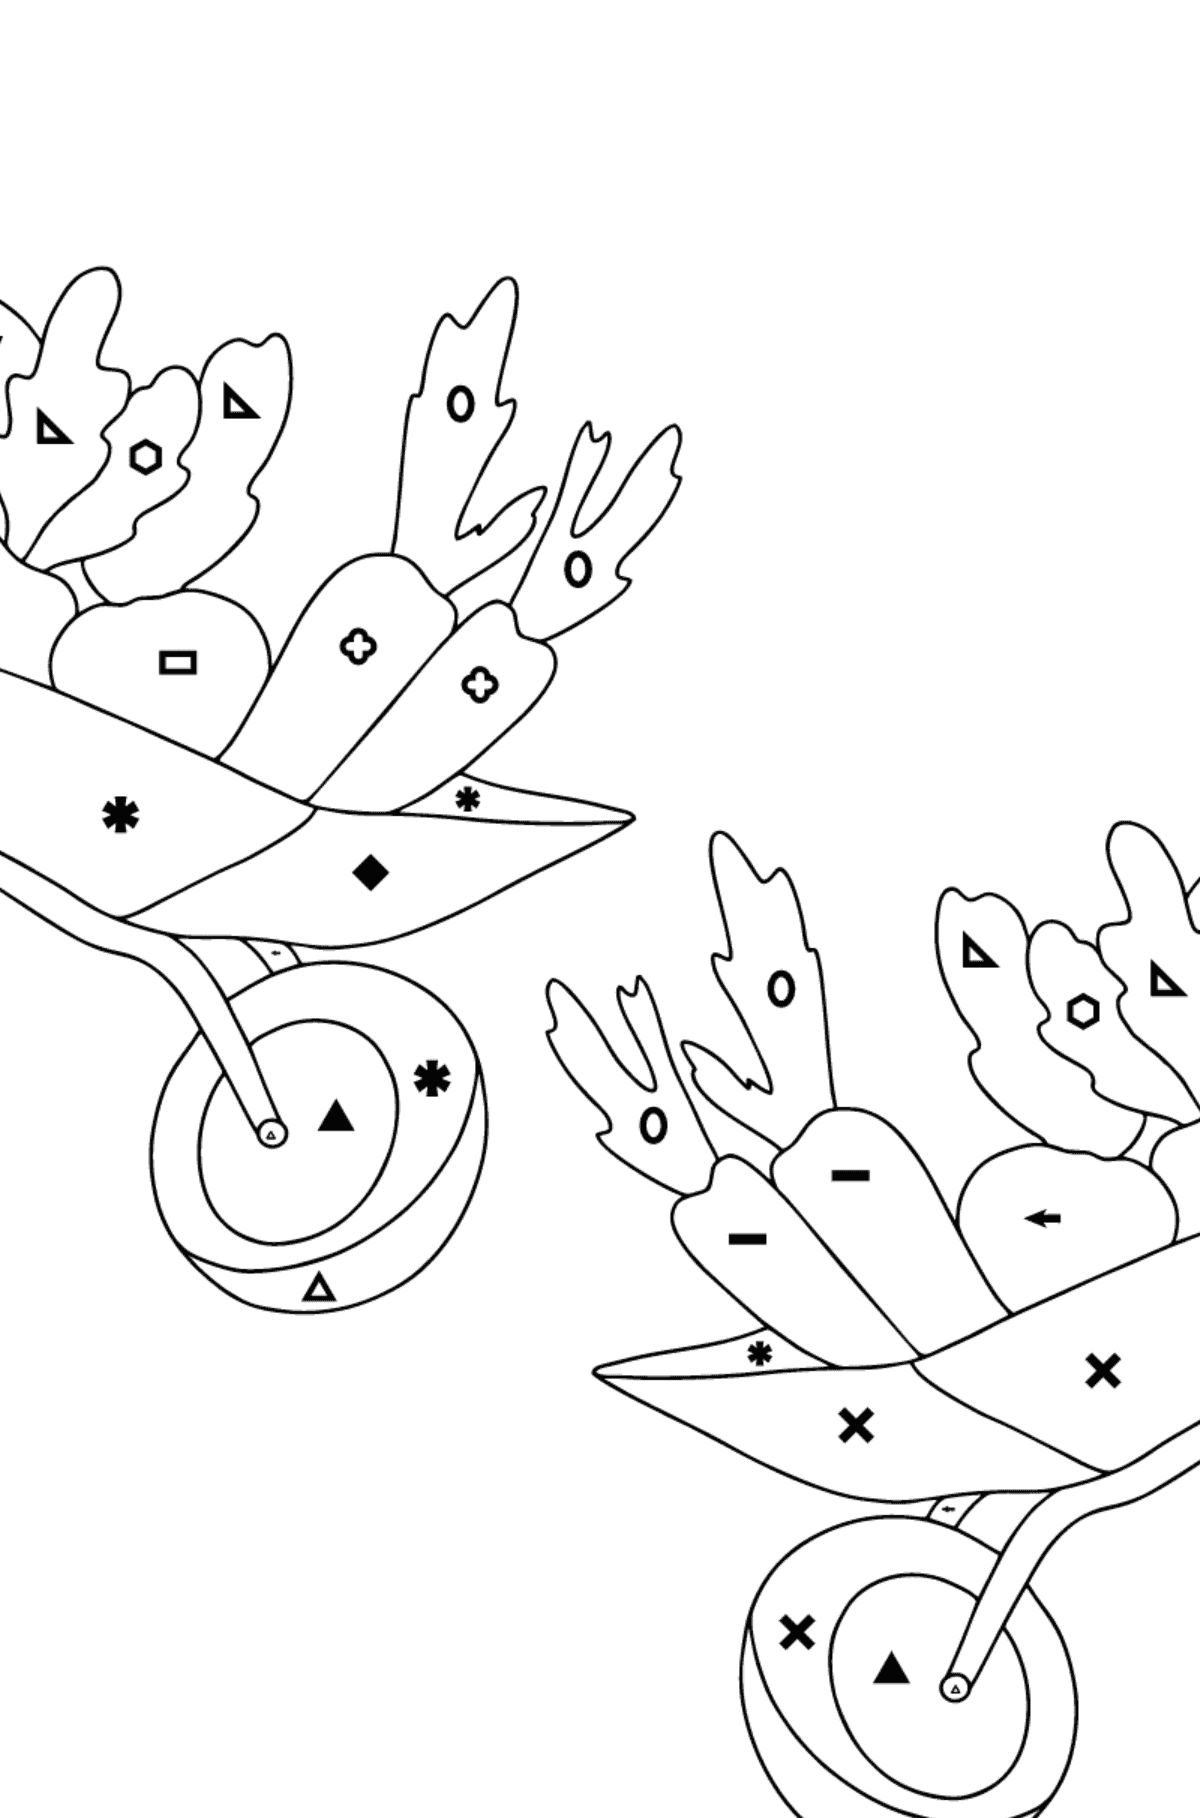 Coloring Page - Hippos in a Garden with Carts for Kids  - Color by Symbols and Geometric Shapes